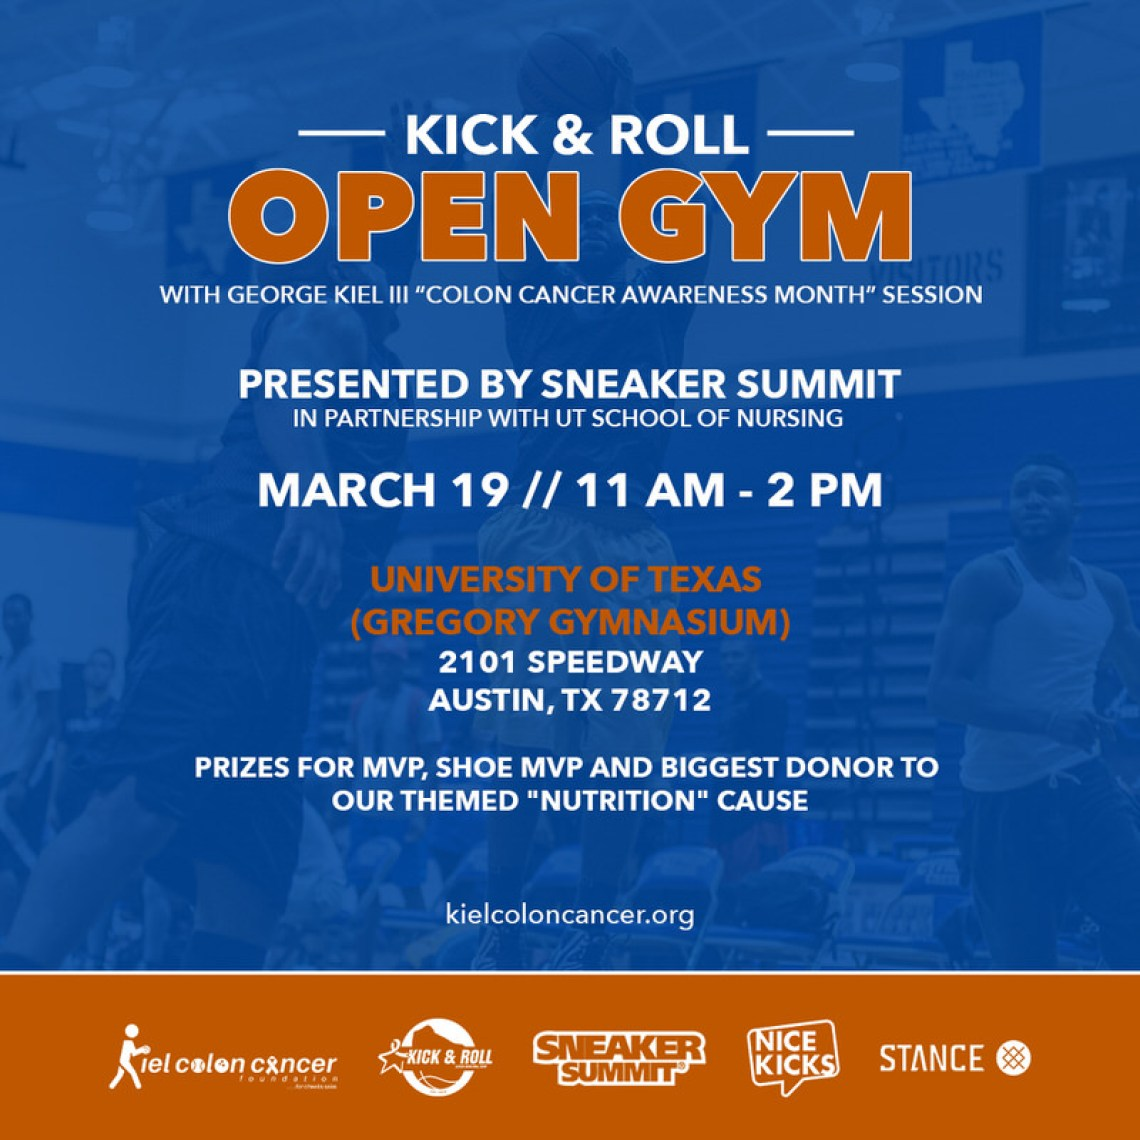 Kick & Roll Open Gym - March 19th in Austin, TX